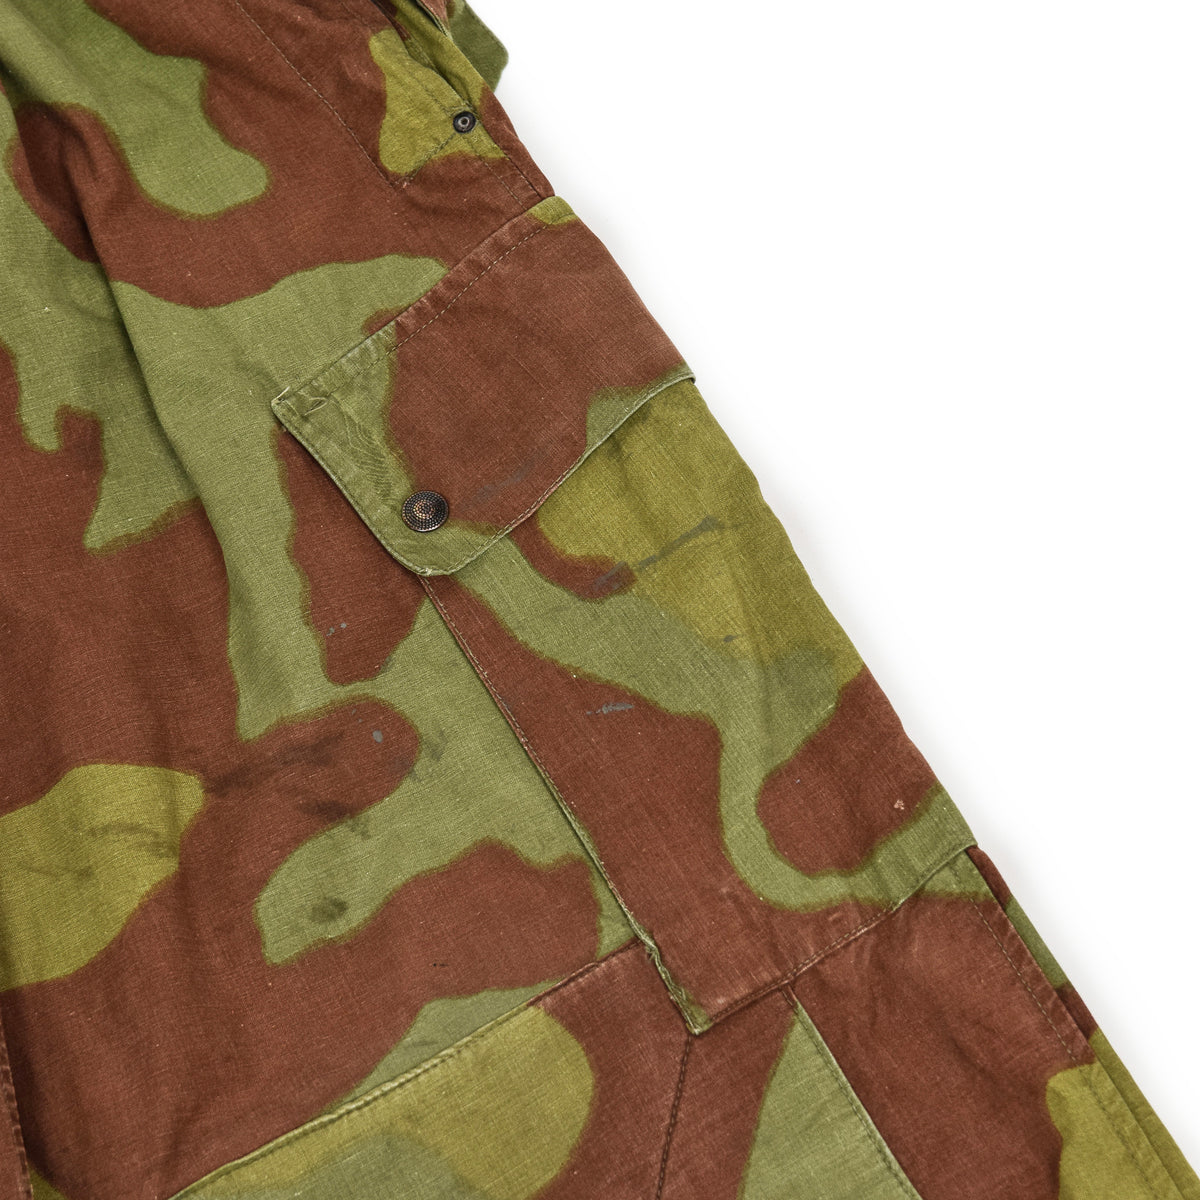 Vintage 60s Italian Military San Marco Camouflage Trousers with Braces M / L thigh pocket